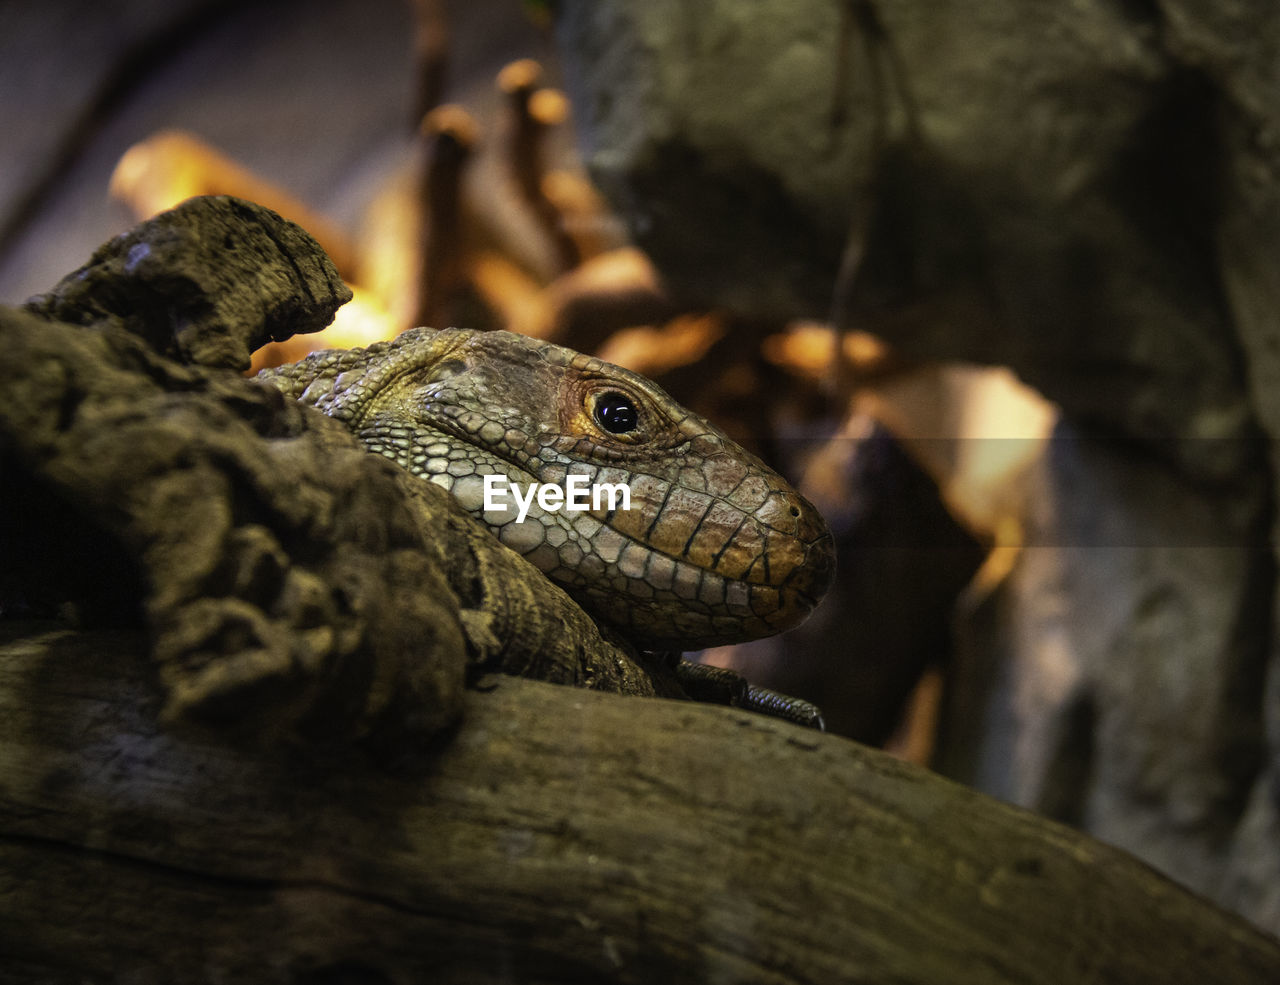 reptile, animal wildlife, vertebrate, animals in the wild, animal, animal themes, one animal, close-up, lizard, no people, nature, focus on foreground, selective focus, day, animal body part, animal head, outdoors, looking, bearded dragon, iguana, animal scale